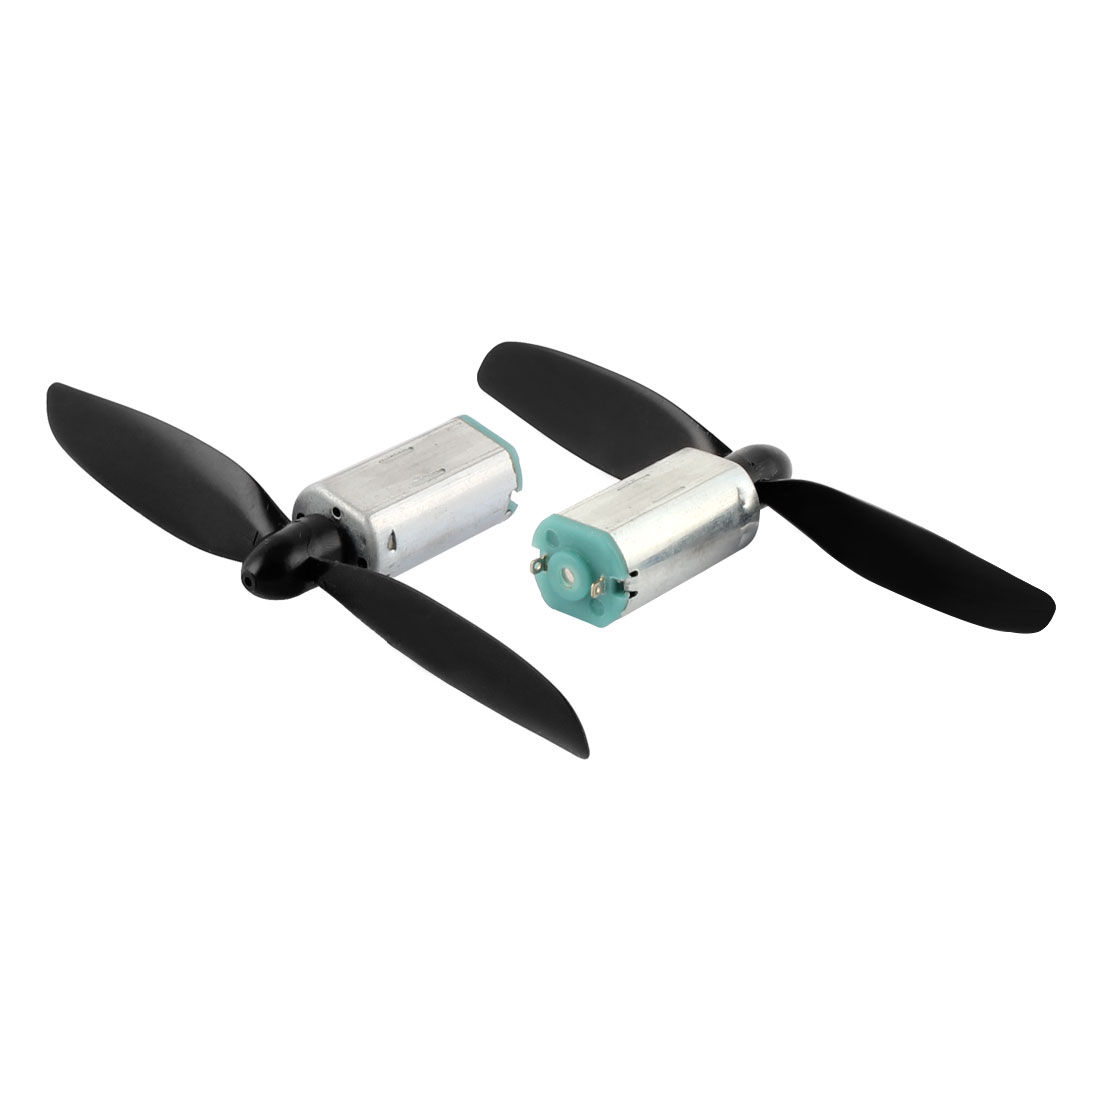 2Pcs RC Quadcopter Mini Glider DC3.7V 23800RPM Micro Motor w 2-vane Propeller